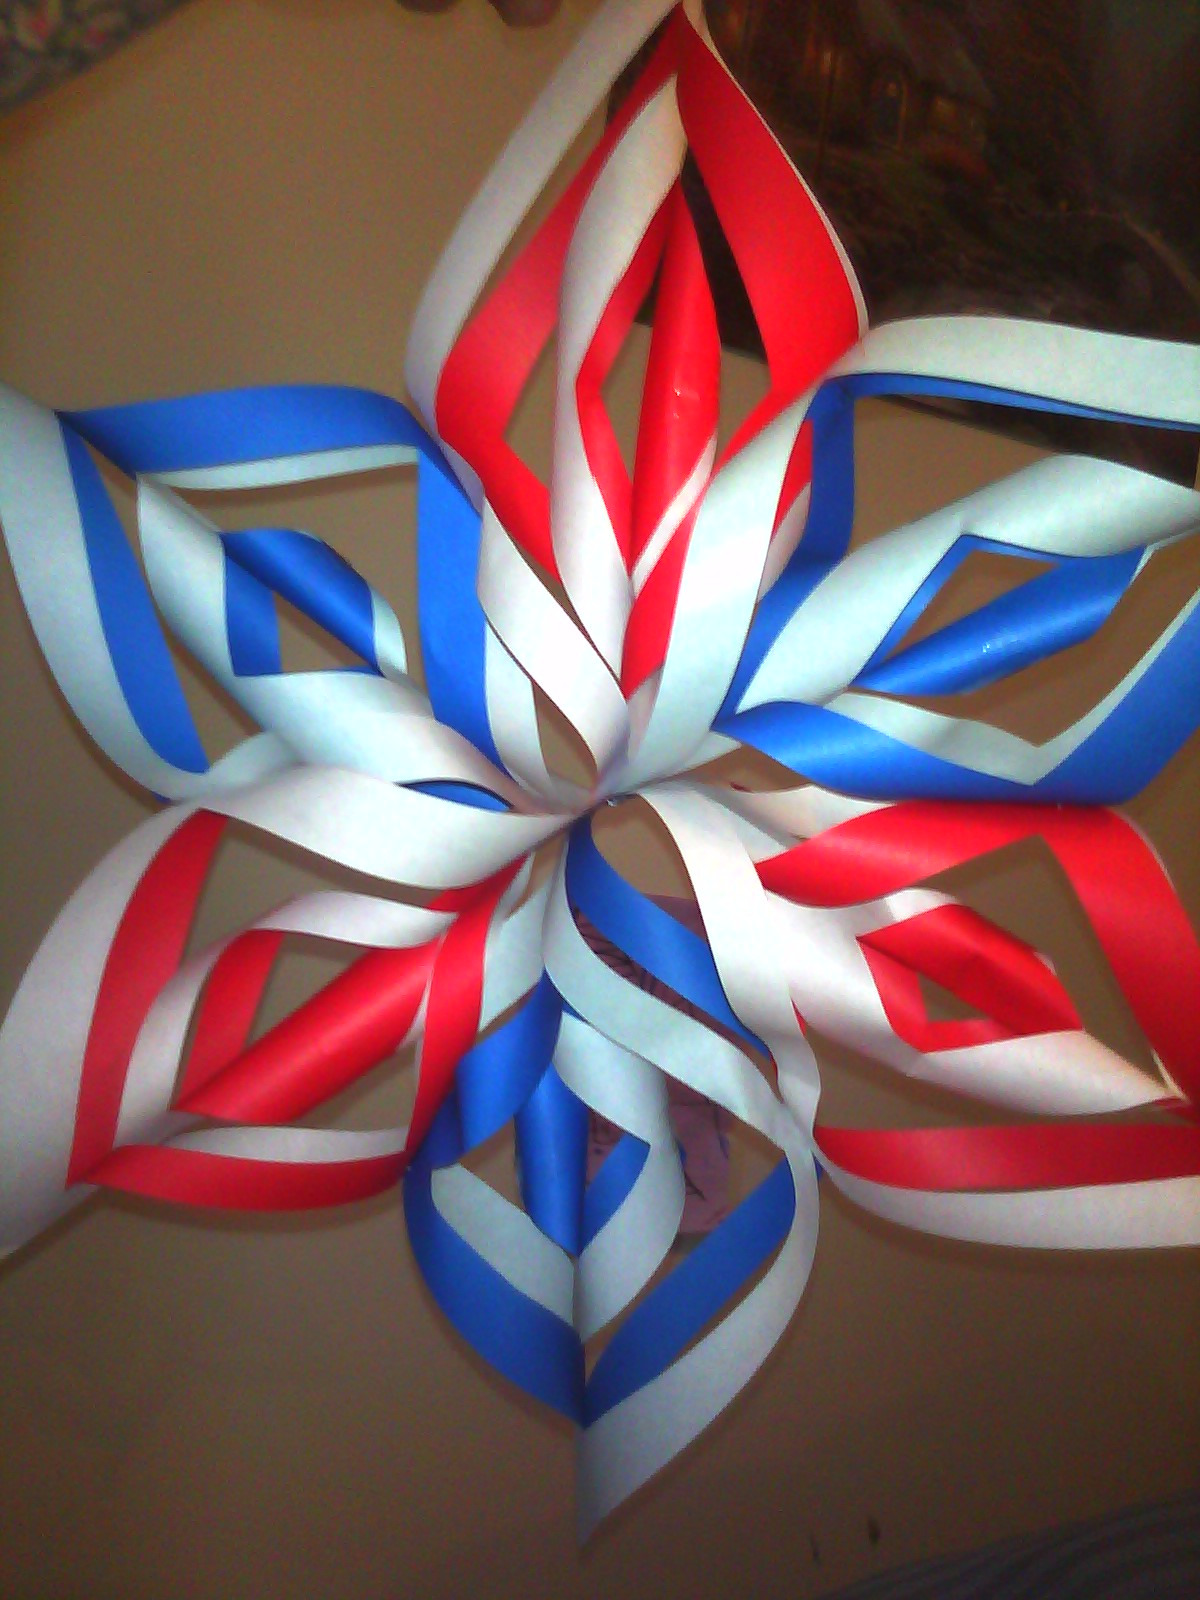 3d folded paper star pattern images